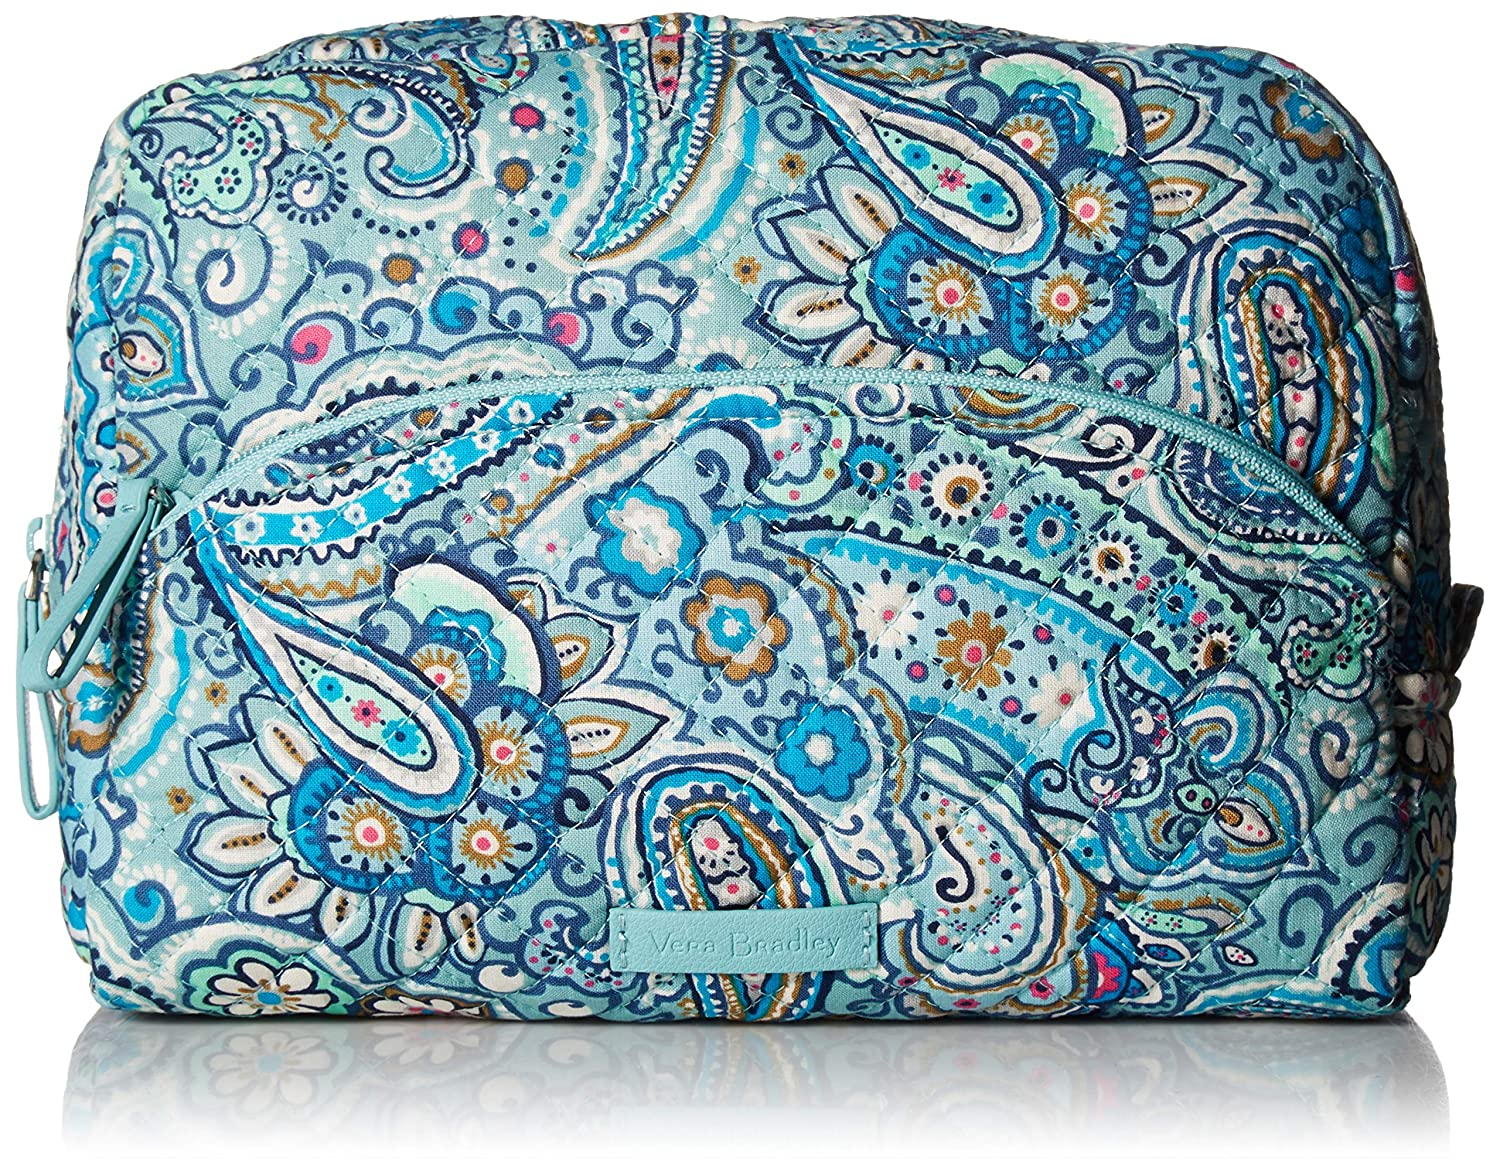 Vera Bradley Women's Signature Cotton Large Cosmetic Makeup Bag